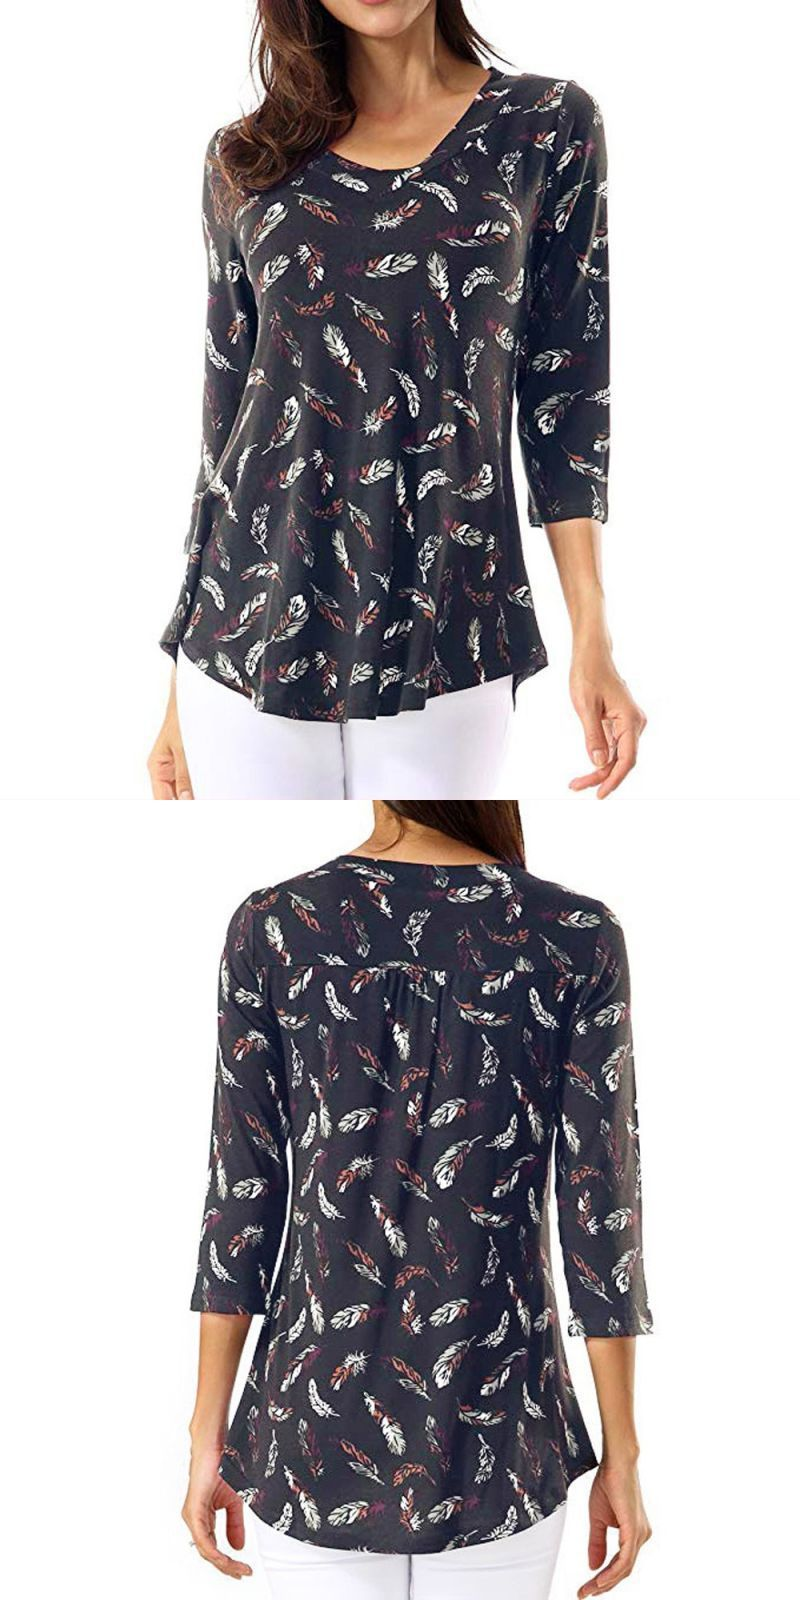 a53be959217 Womens tops and blouses vintage autumn long sleeve blouse 2018 women clothes  feather print ladies tops fashion clothing  polyester  regular  vintage ...